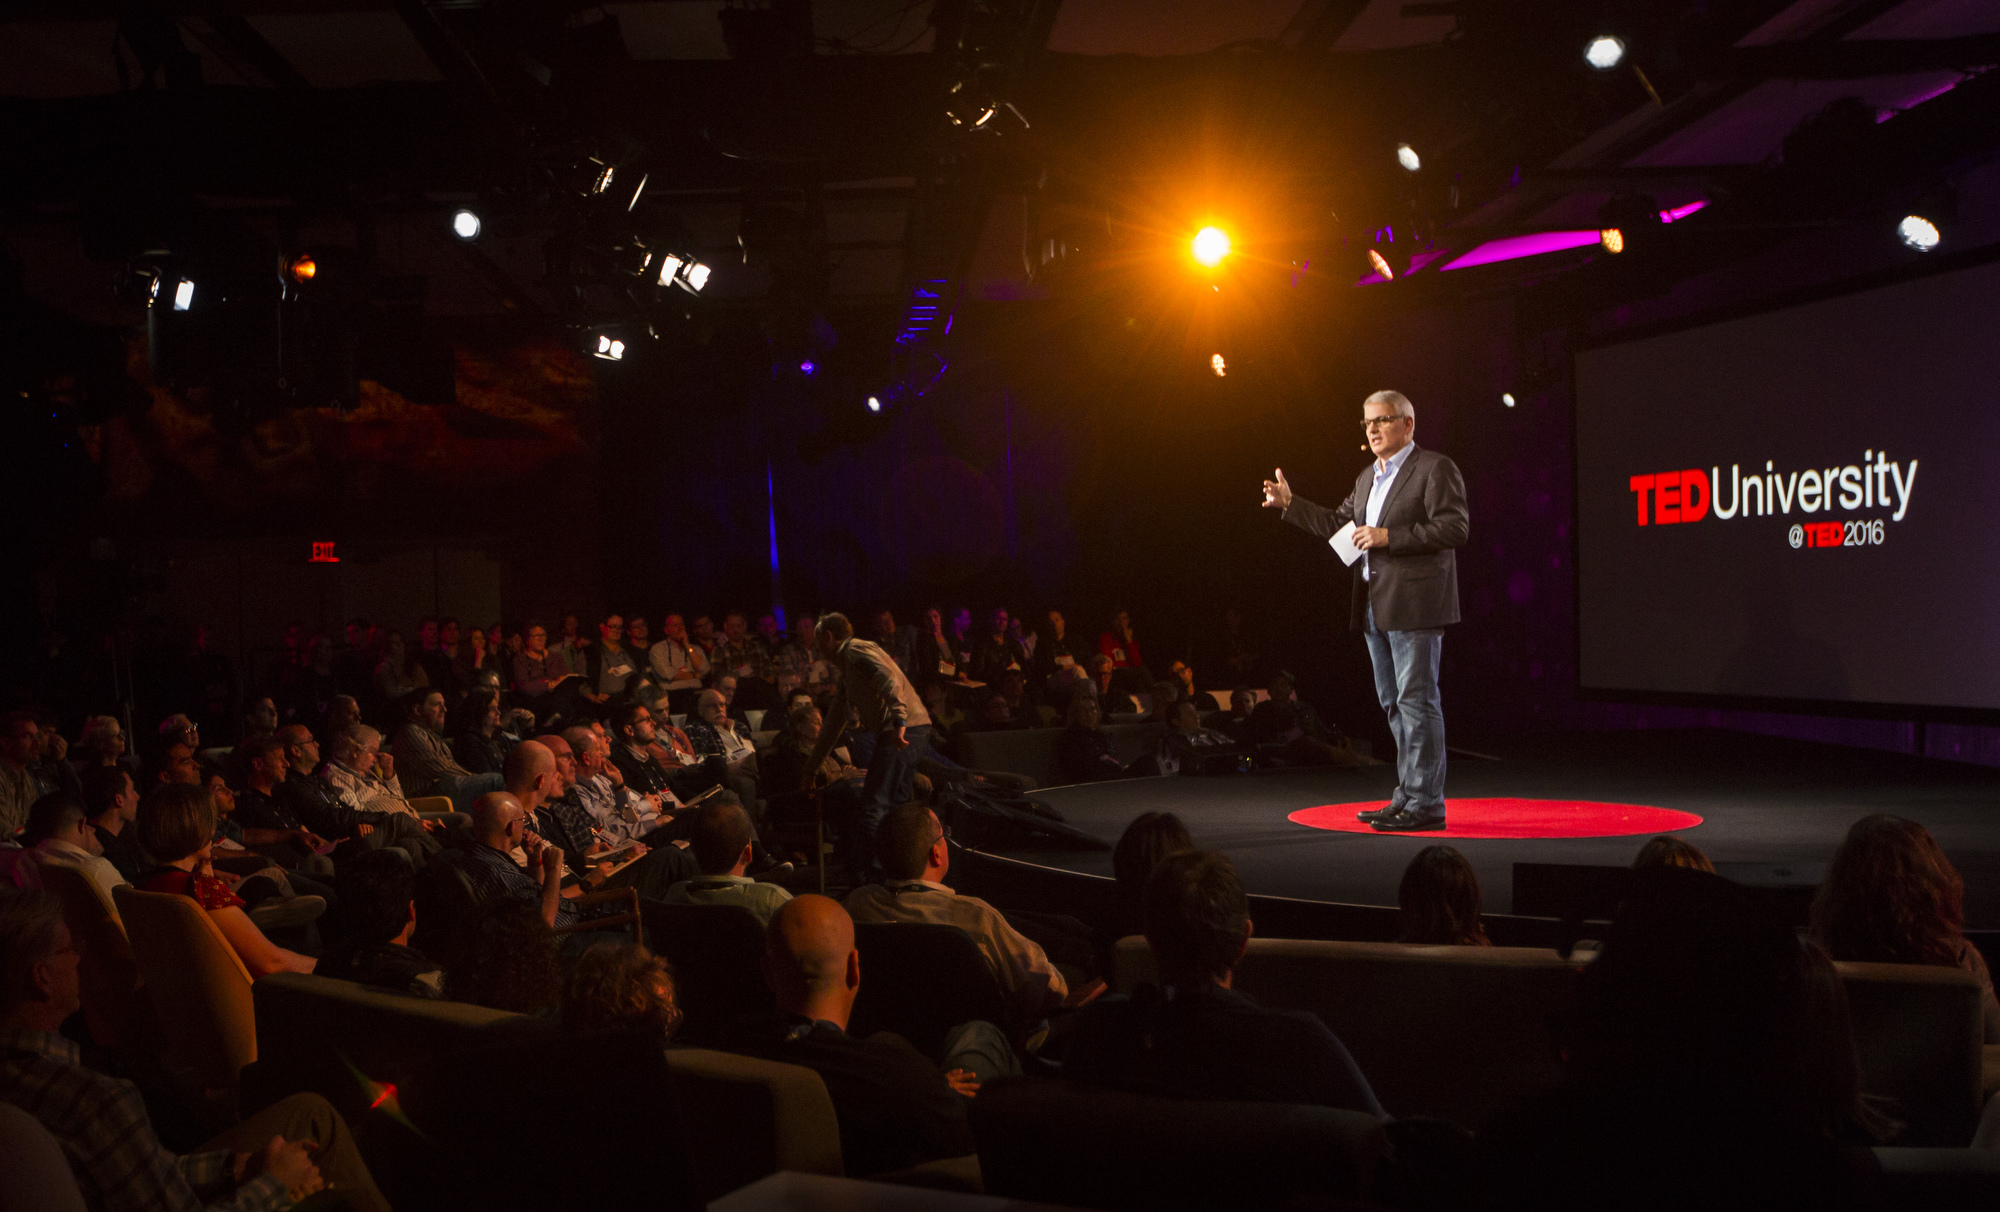 Bruno Giussani hosts TED University at TED2016. February 15-19, 2016, Vancouver Convention Center, Vancouver, Canada. Photo: Ryan Lash / TED